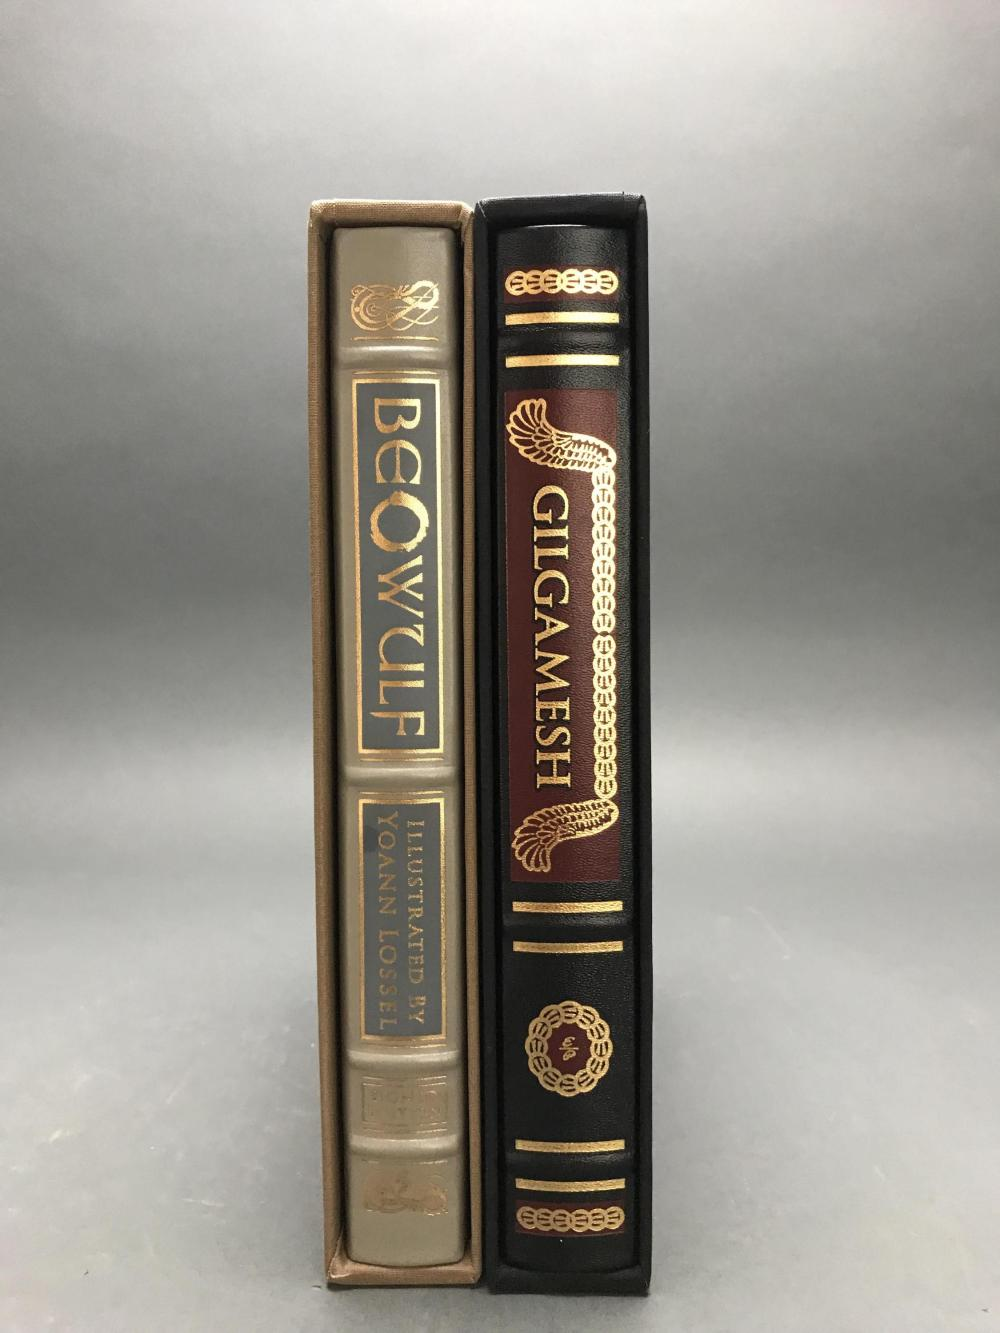 2 vols. Easton. Limited Editions. Sgd.